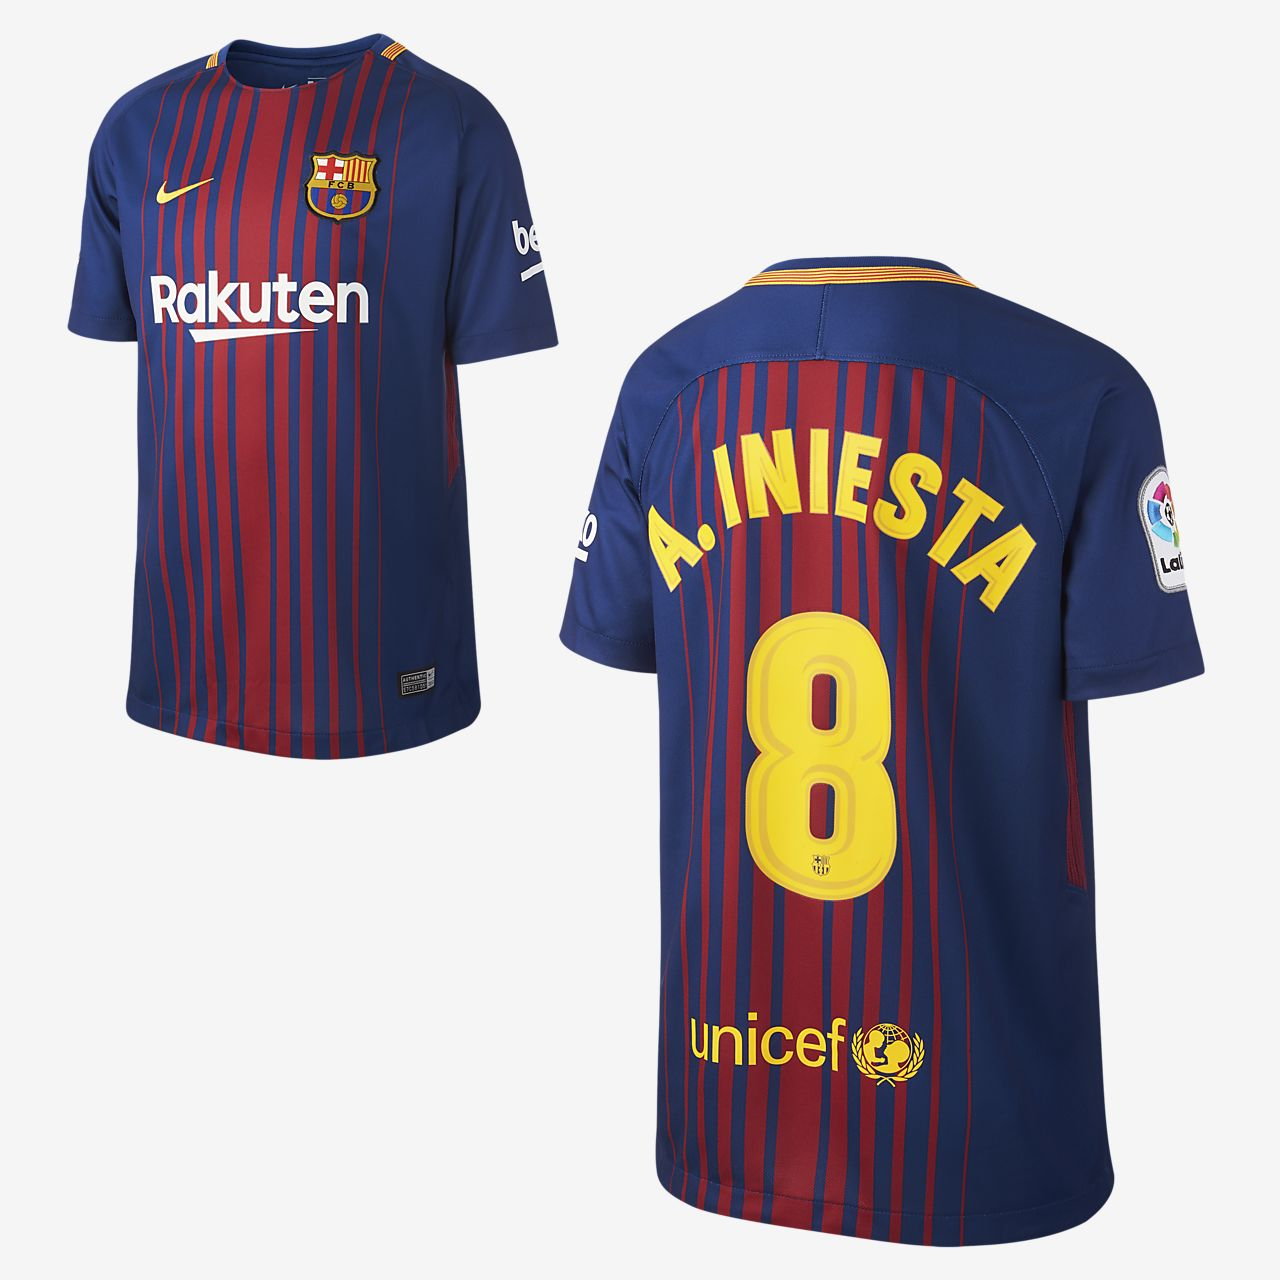 1a5d974263c 2017 18 FC Barcelona Home (Andrés Iniesta) Older Kids  Football ...